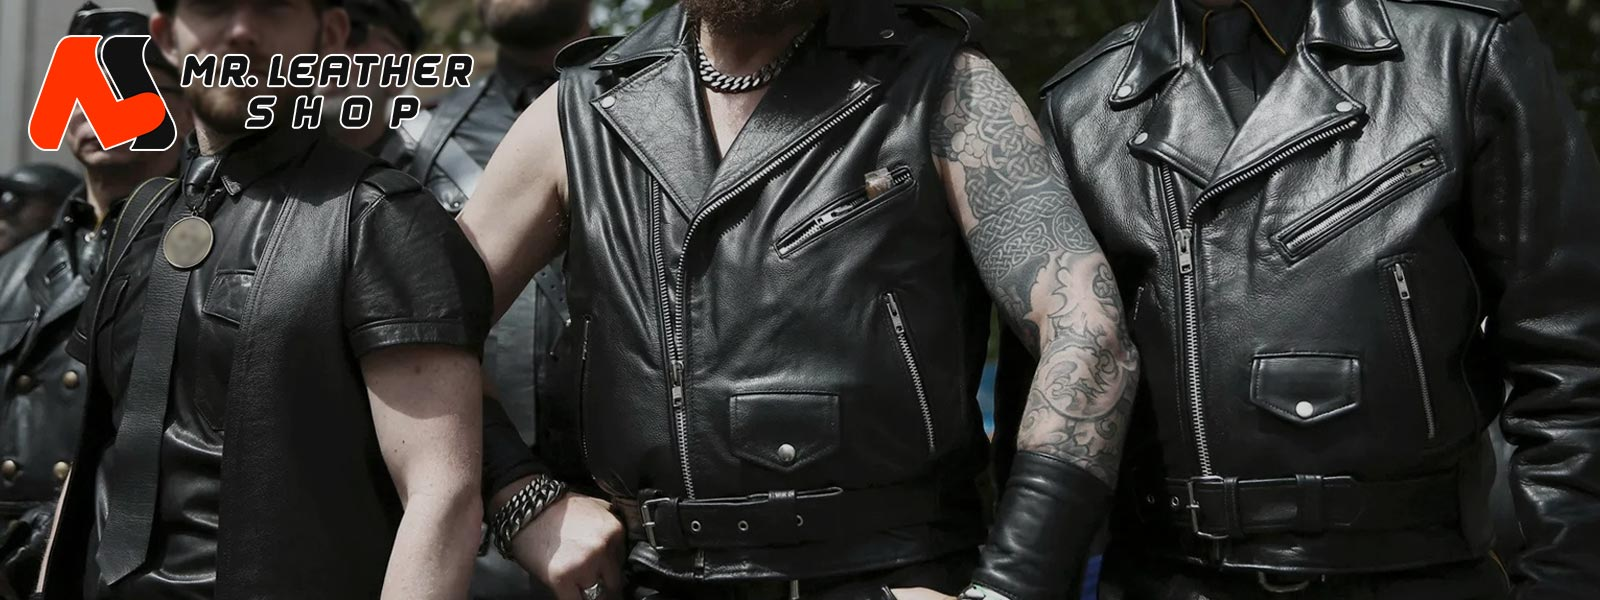 Mr. Leather Shop Custom Leather Shirts